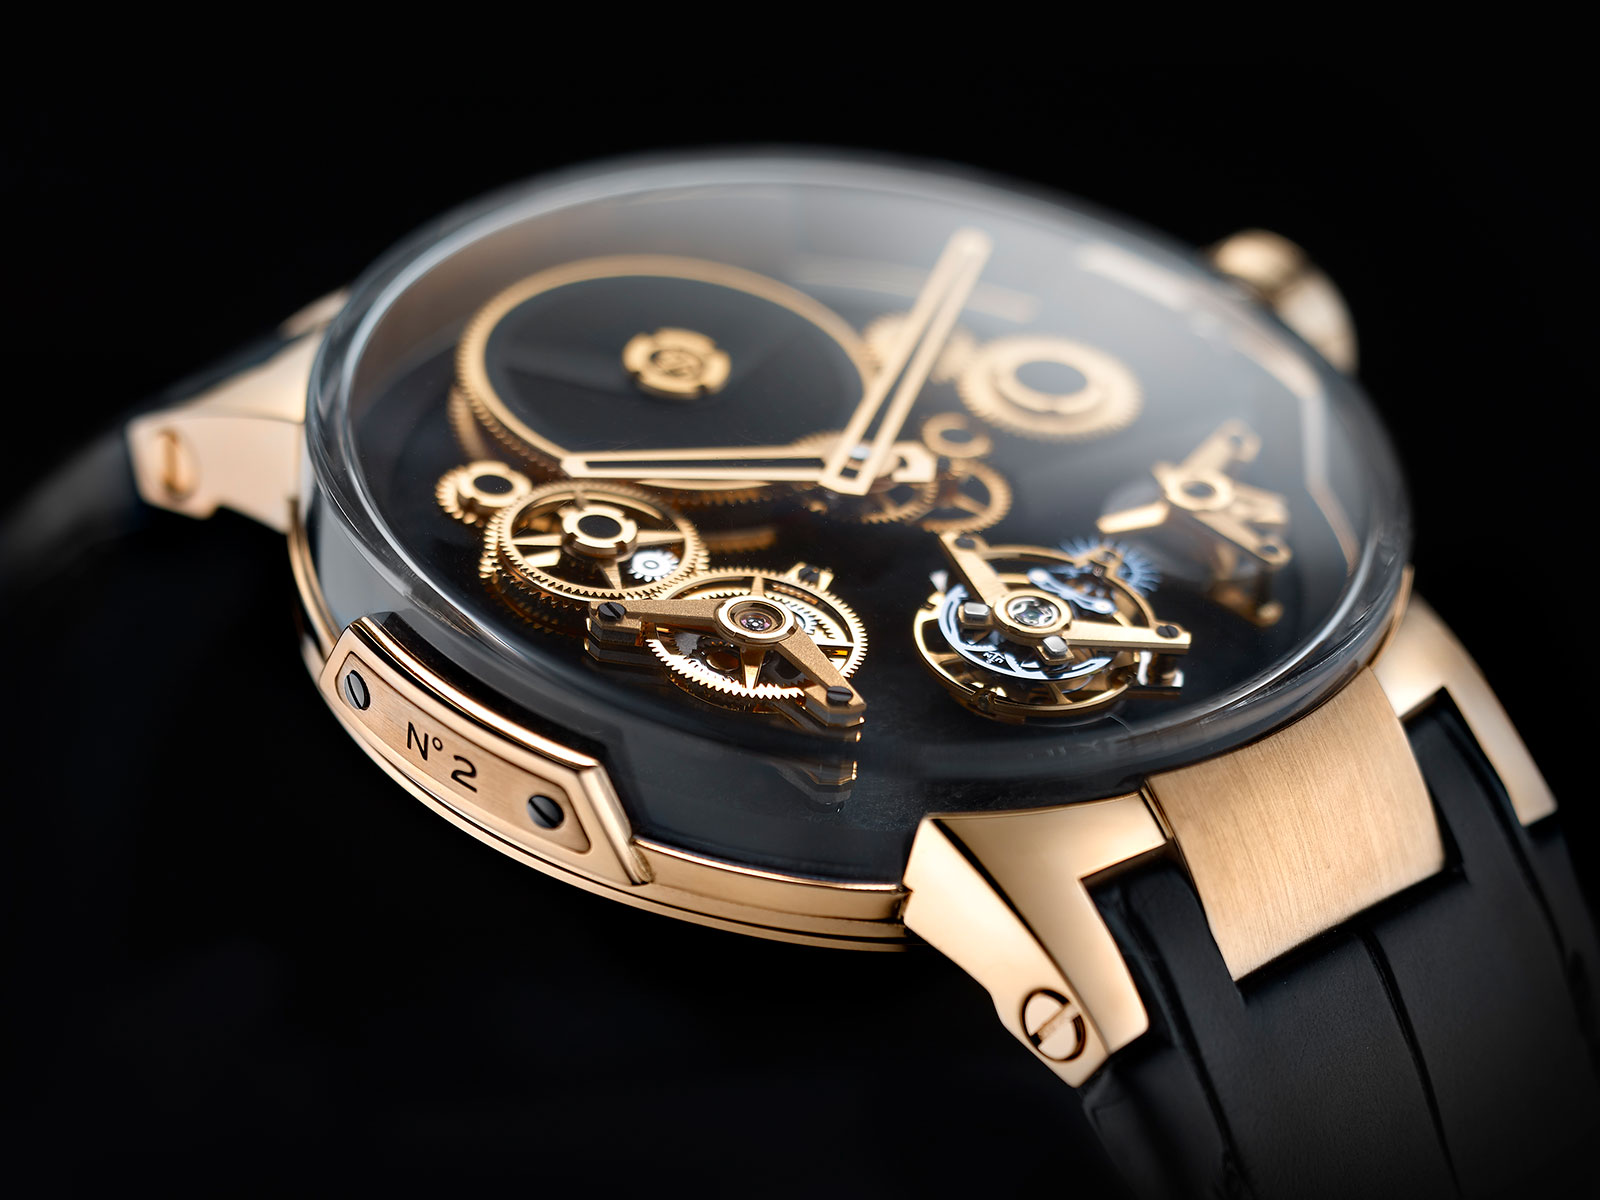 Ulysse-Nardin-Executive-Tourbillon-Free-Wheel watch 2